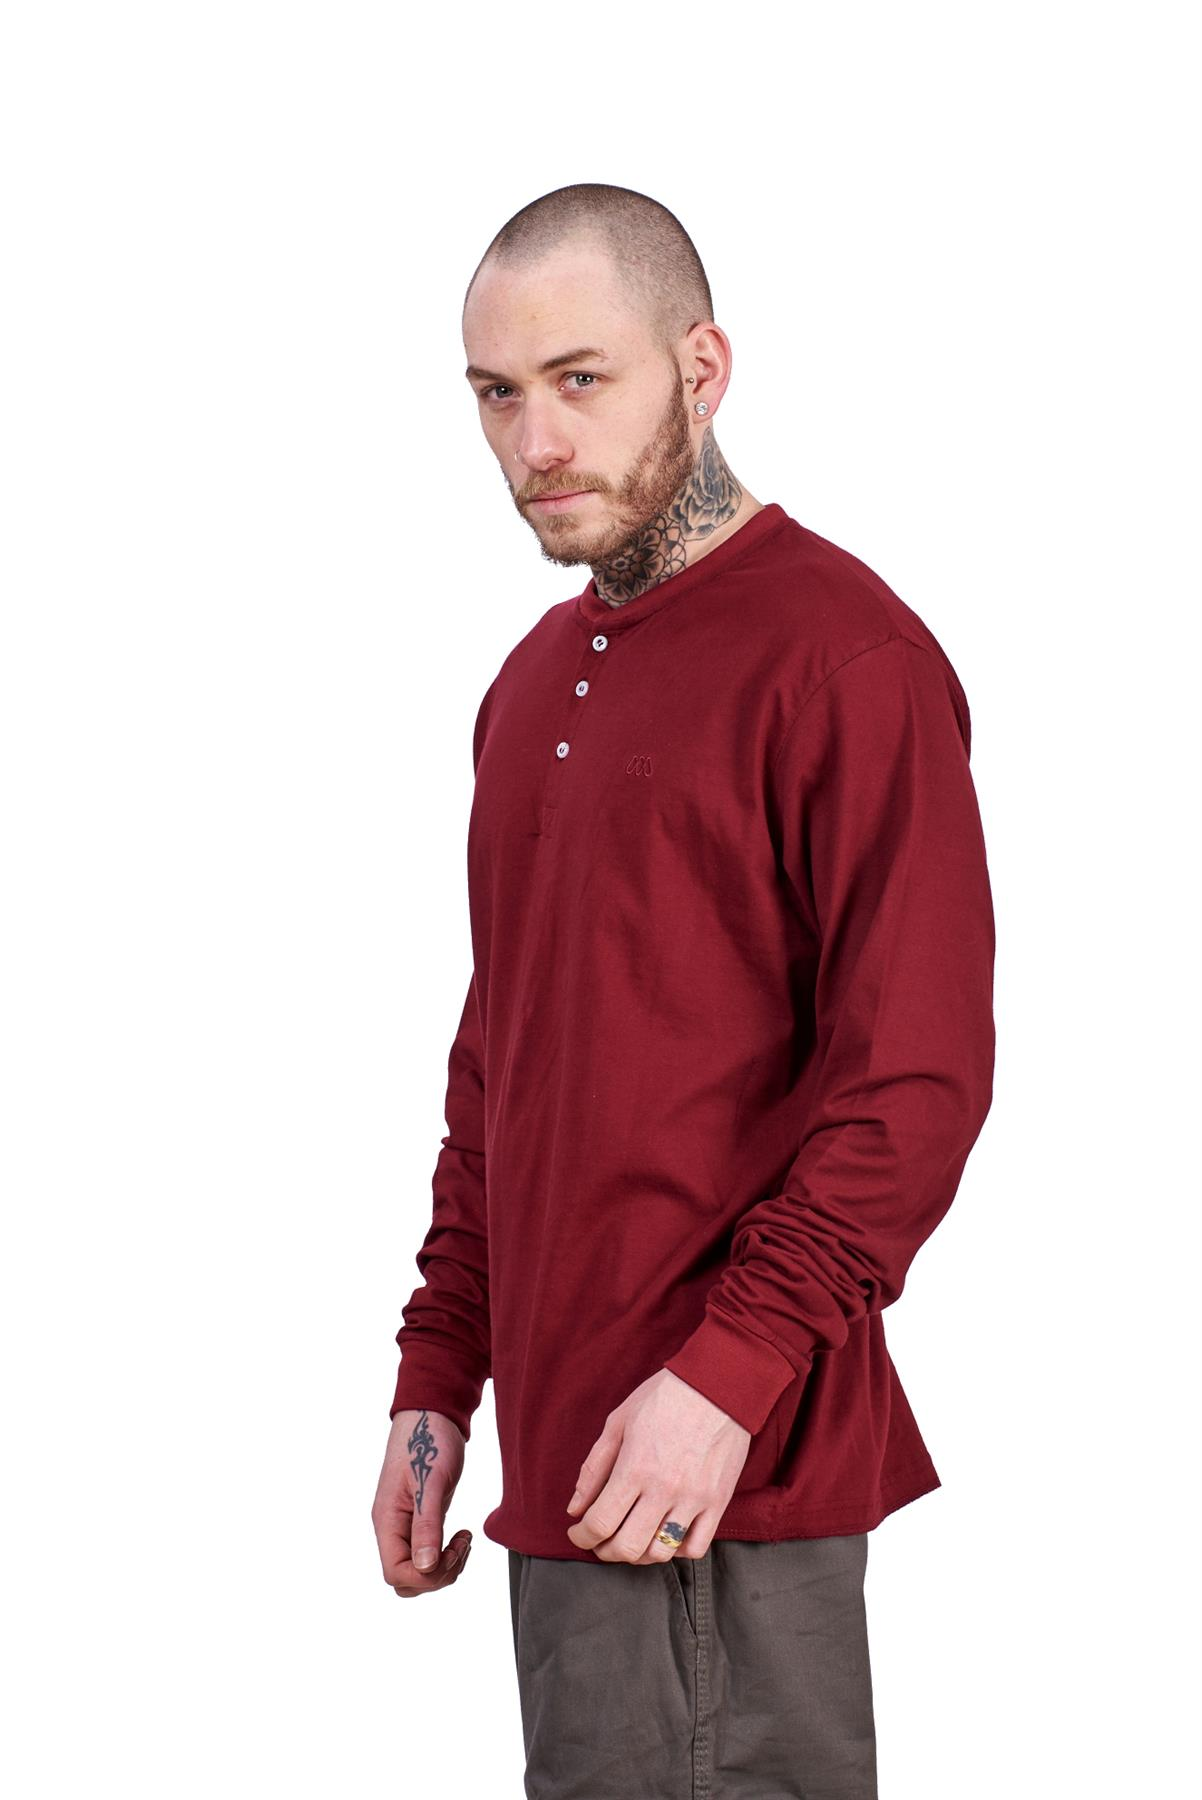 Mens Casual Shirts 100/% Jersey Cotton Henley long Sleeve ribbed cuff Tops M XXL